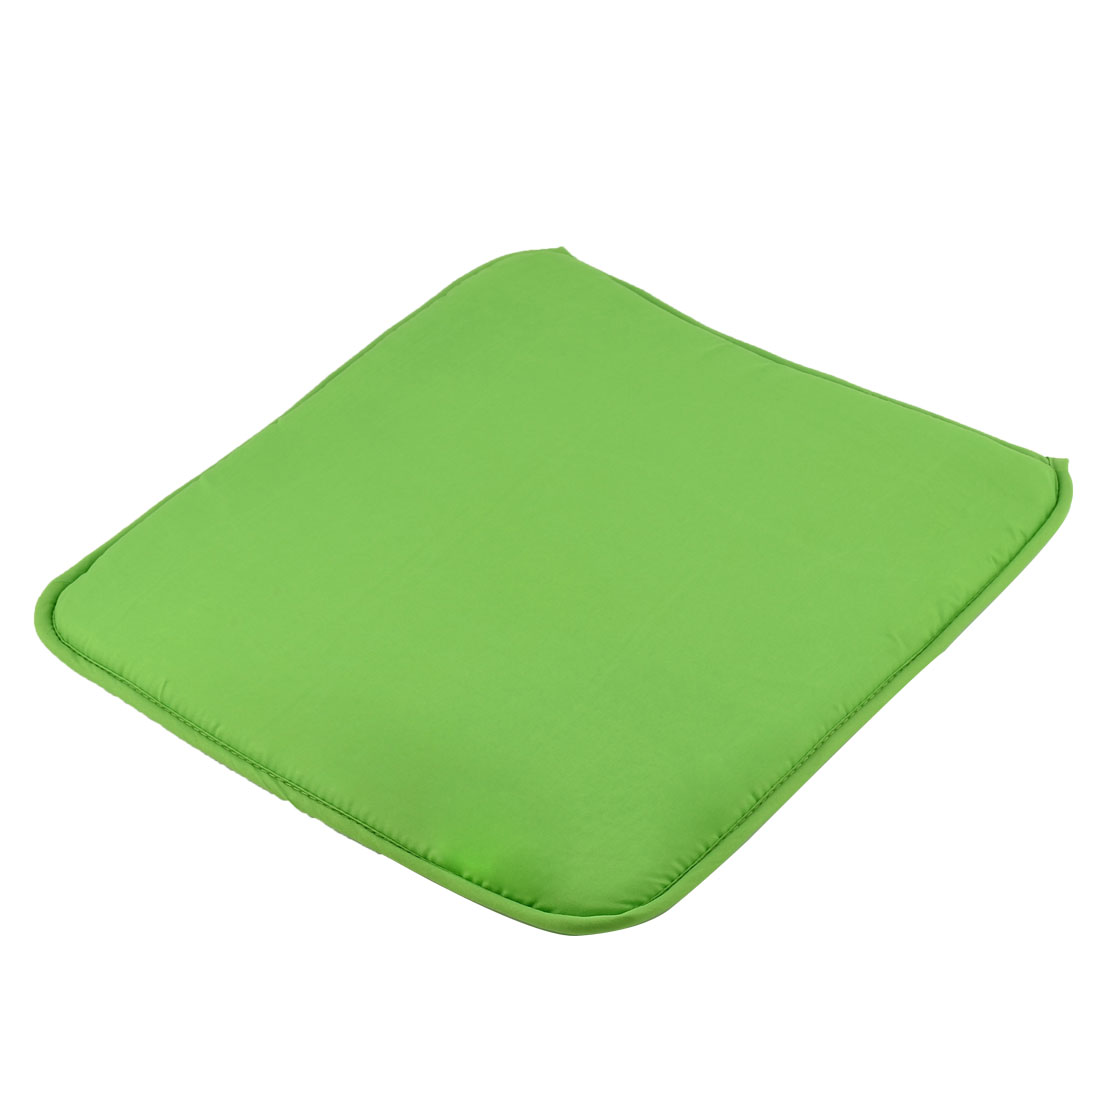 Home Office Sponge Solid Anti Slip Seat Chair Cushion Pad Cover Green 39 x 39cm